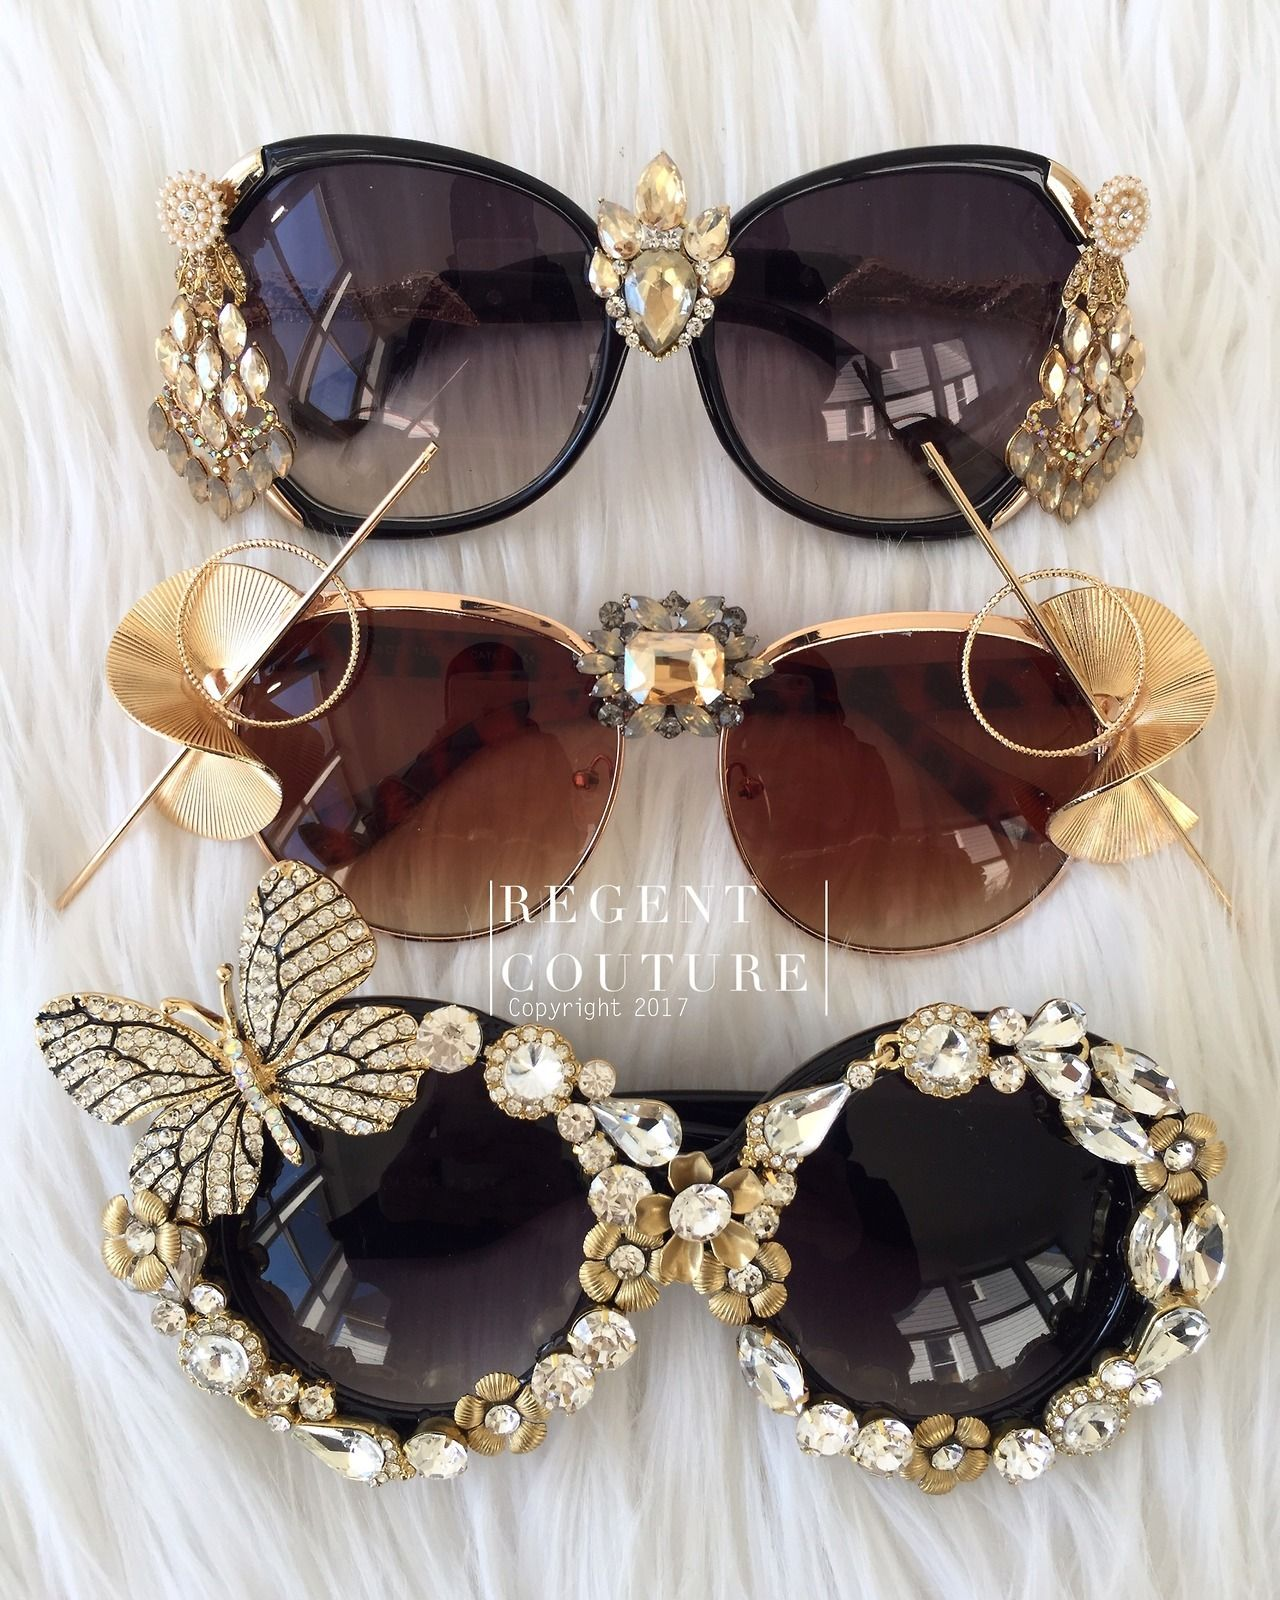 Iridescent Rhinestone Archangel Goggles Ready to ship Carrying case included